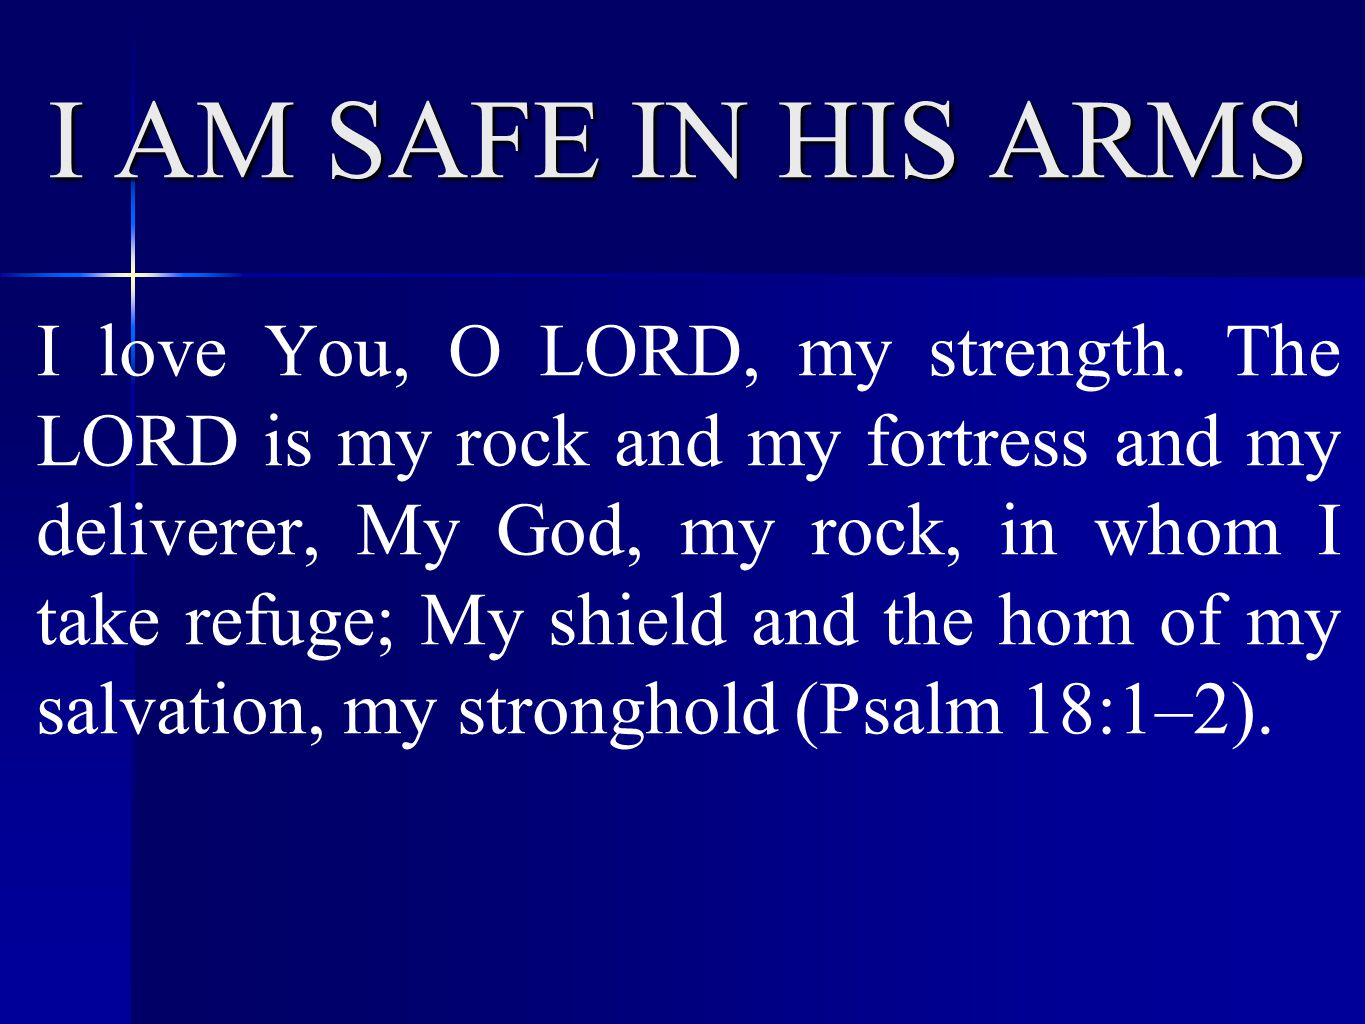 I AM SAFE IN HIS ARMS I love You, O LORD, my strength.